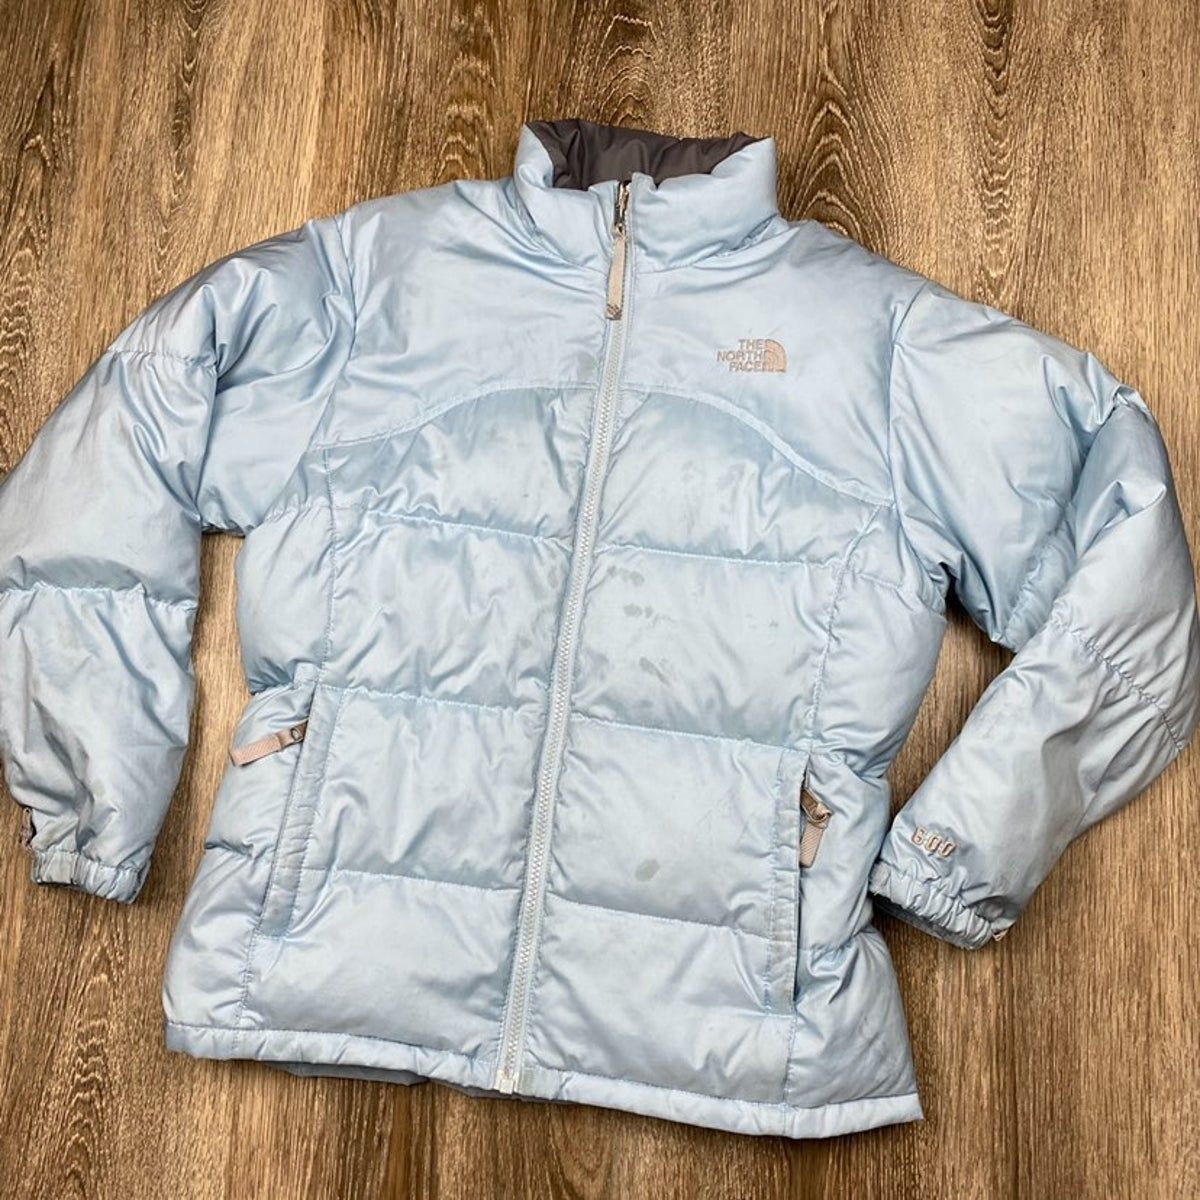 North Face Down Puffer Jacket North Face Puffer Jacket Blue North Face Jacket The North Face Puffer Jacket [ 1200 x 1200 Pixel ]